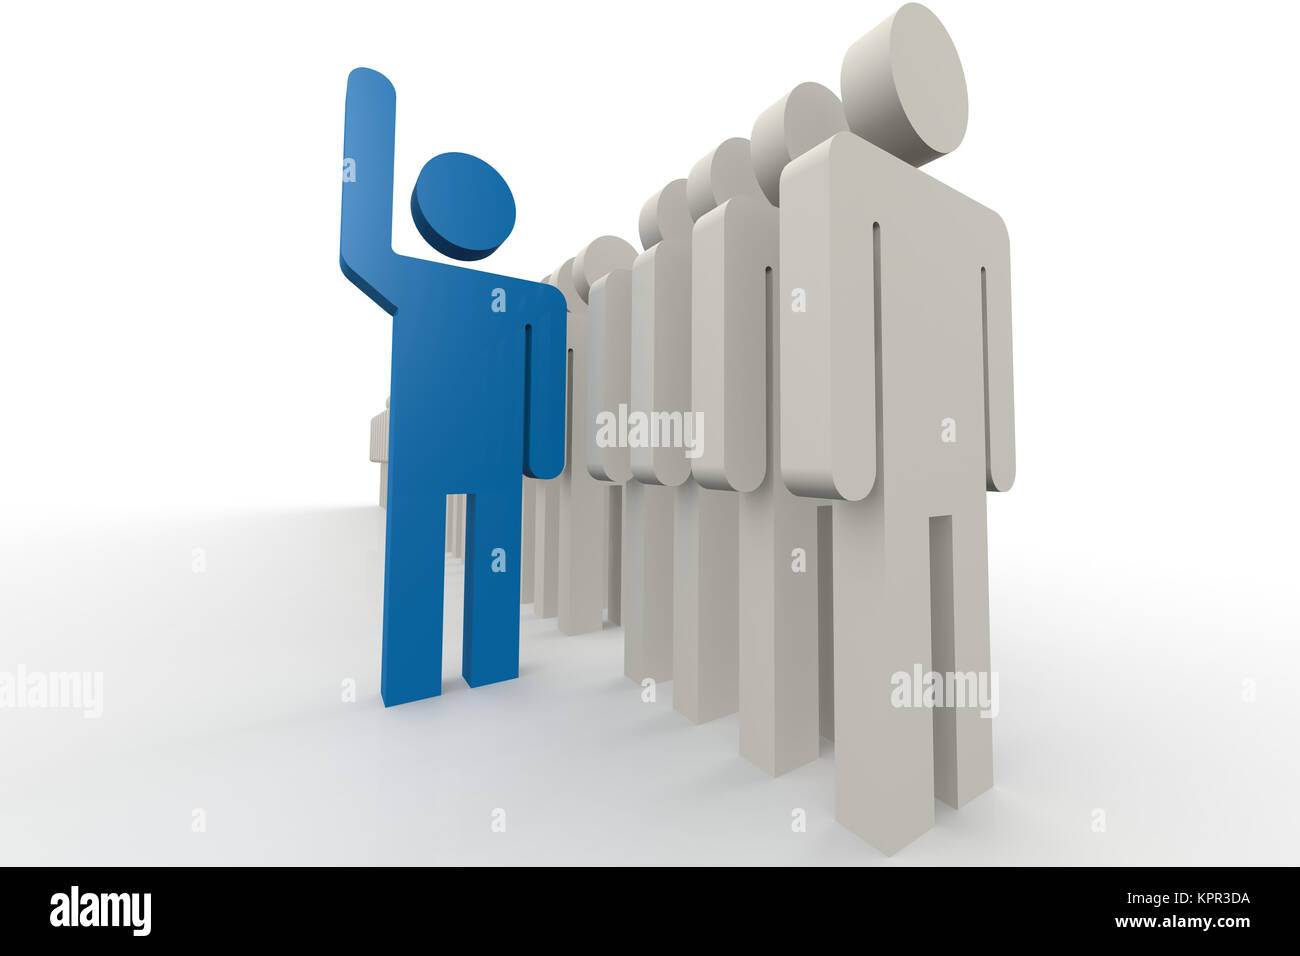 Blue man stand out of a line of queue stock photo 168923366 alamy blue man stand out of a line of queue ccuart Images